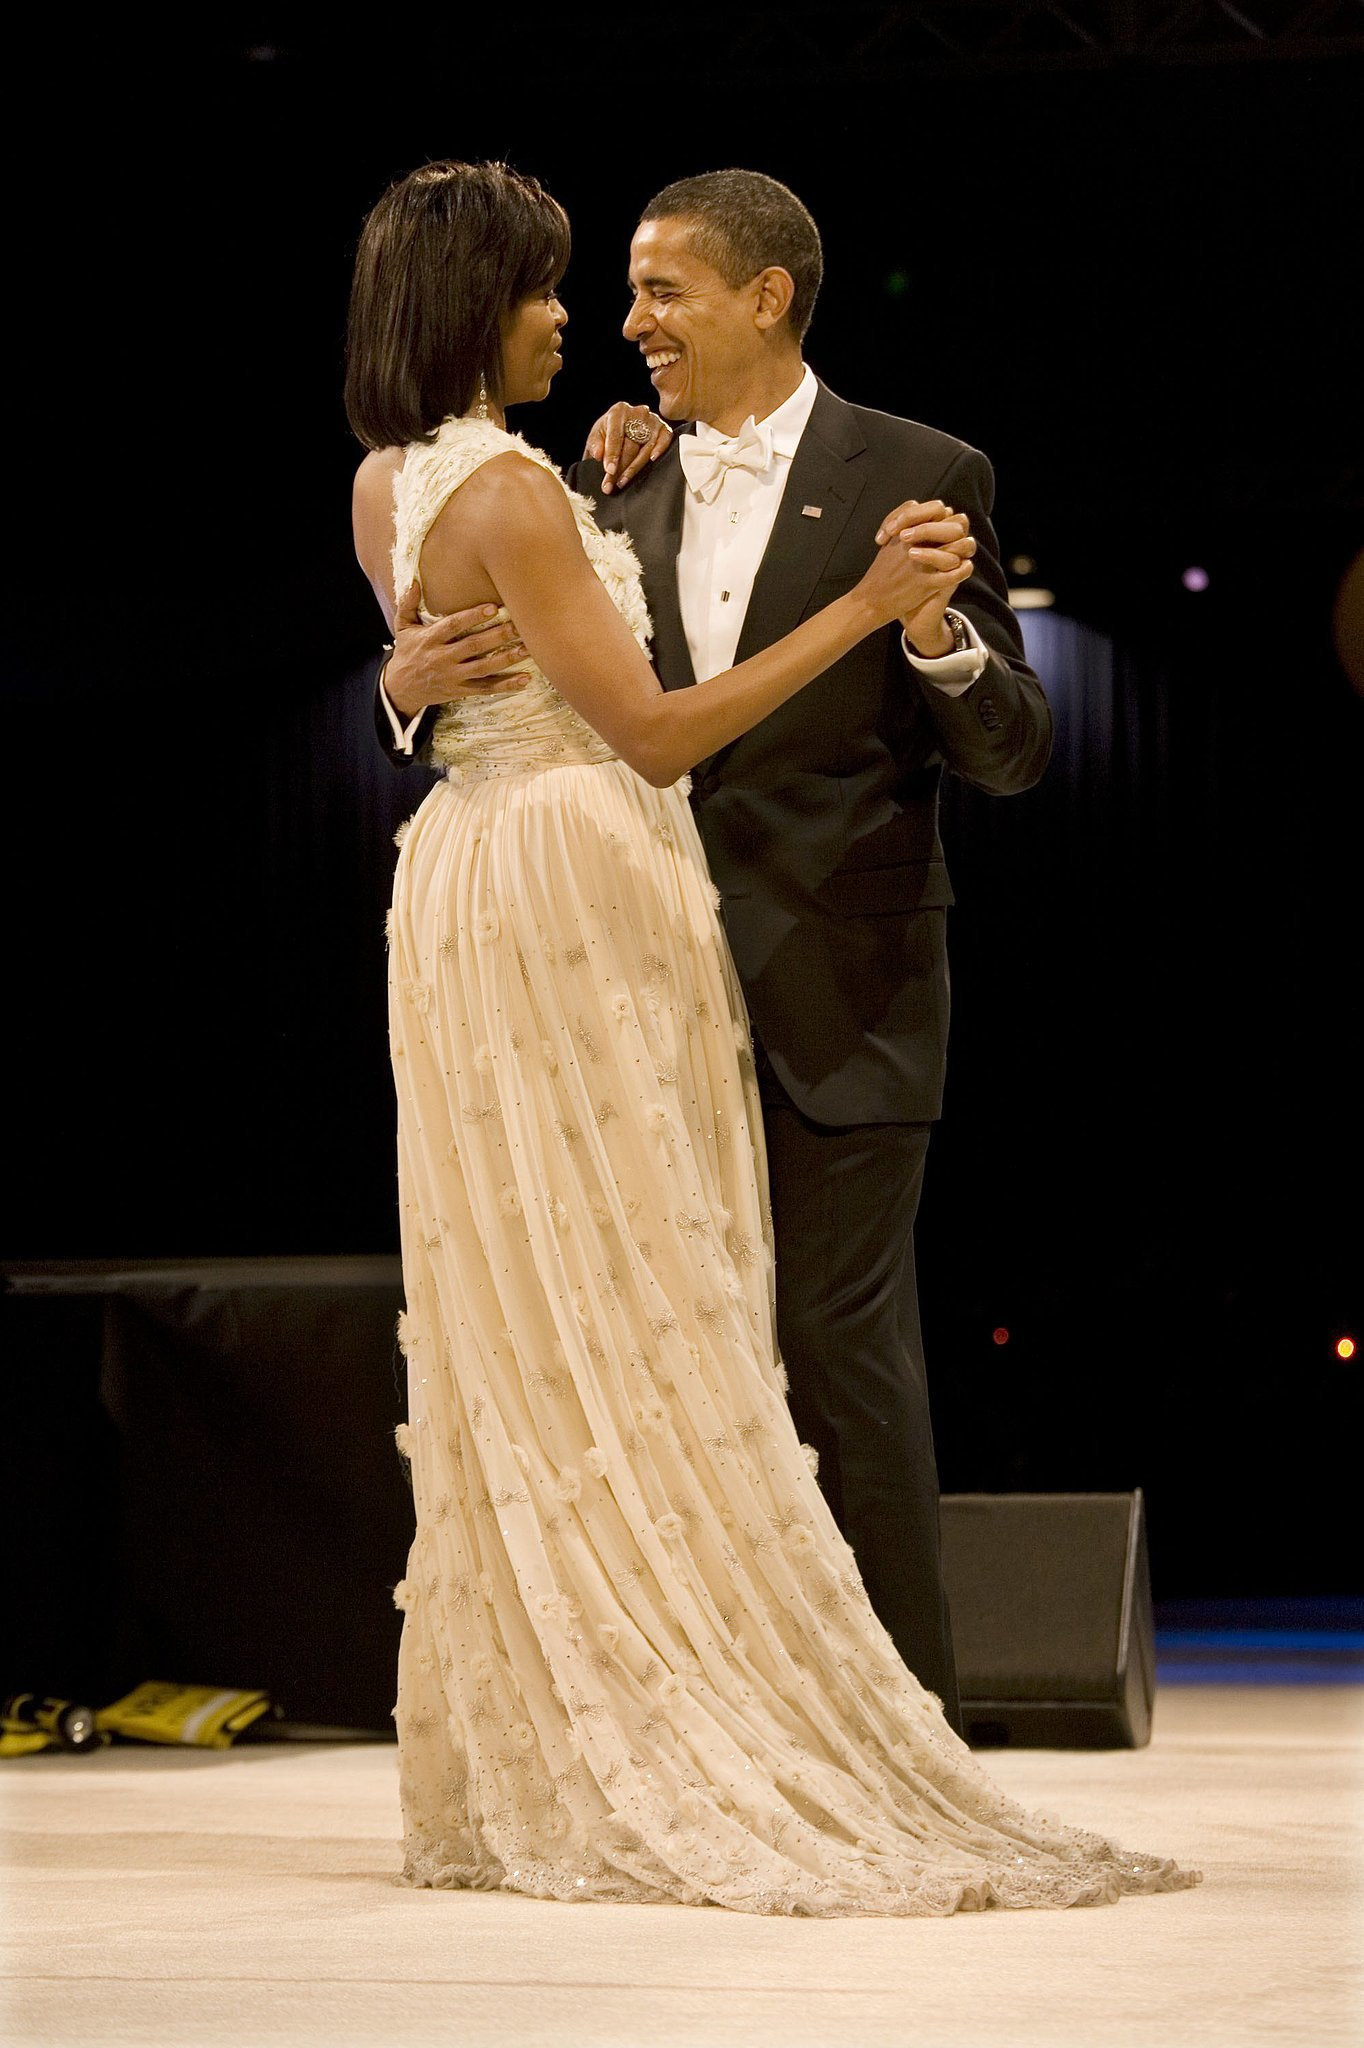 Michelle Obama at the Inaugural Ball in 2009